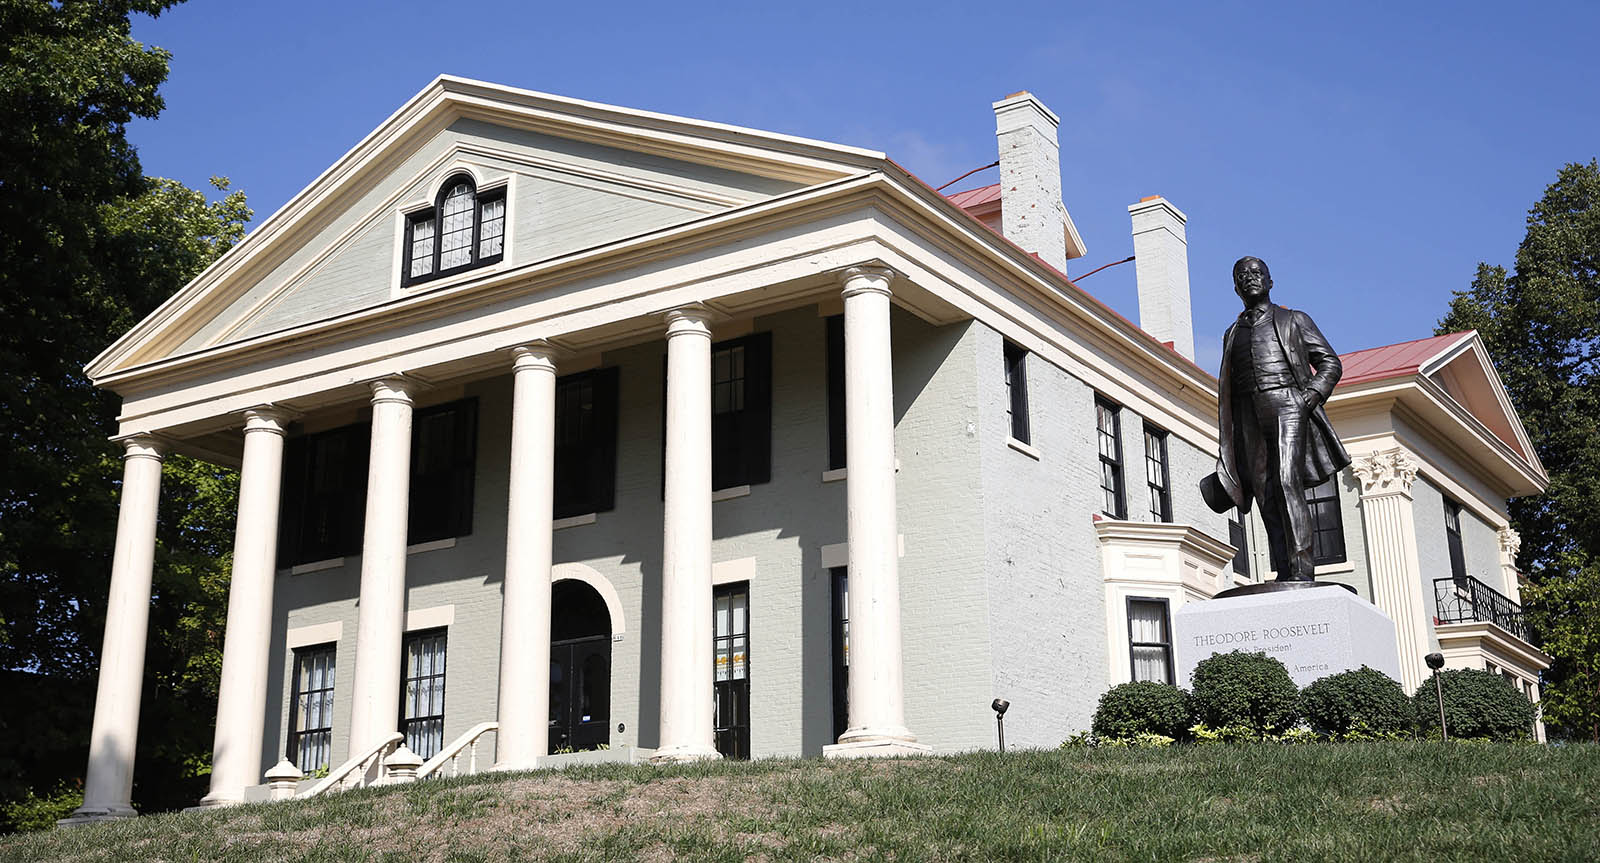 The Wilcox Mansion, where President Theodore Roosevelt was inaugurated in 1901 following the assassination of President William McKinley, is now designated as a National Park. The building has more of a military past than you might expect. (Derek Gee/News file photo)